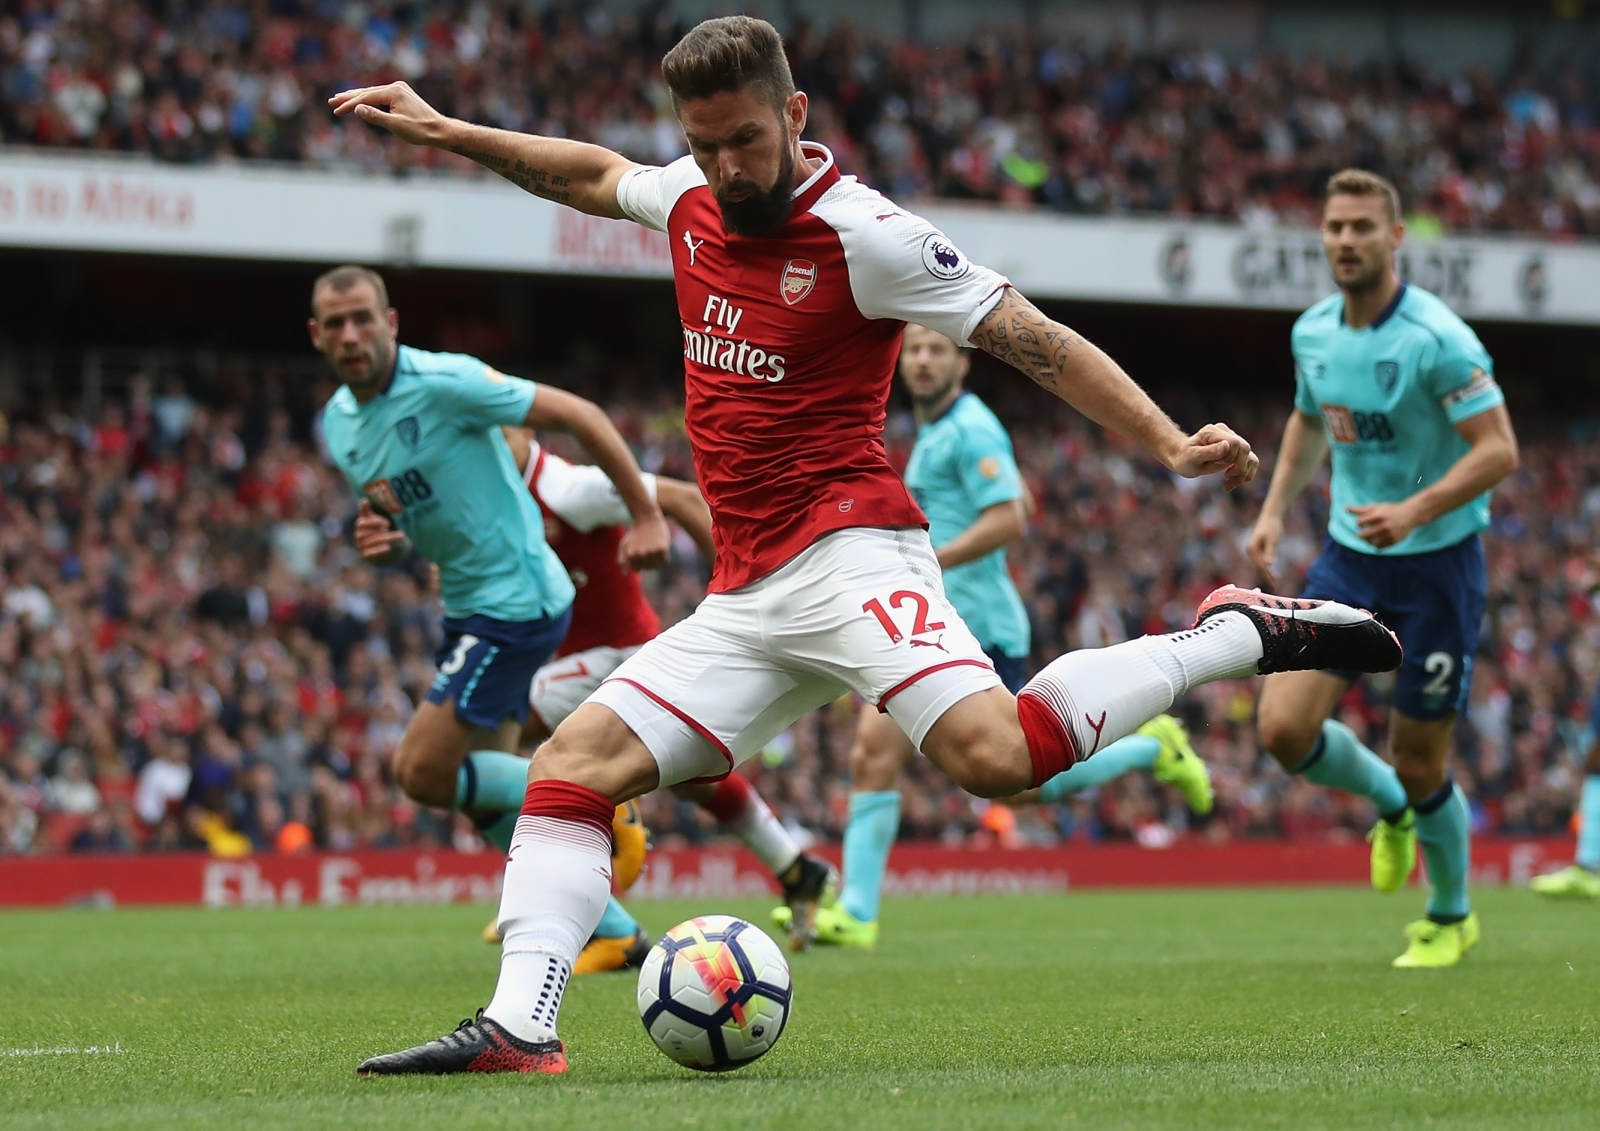 'I almost quit Arsenal', admits Giroud